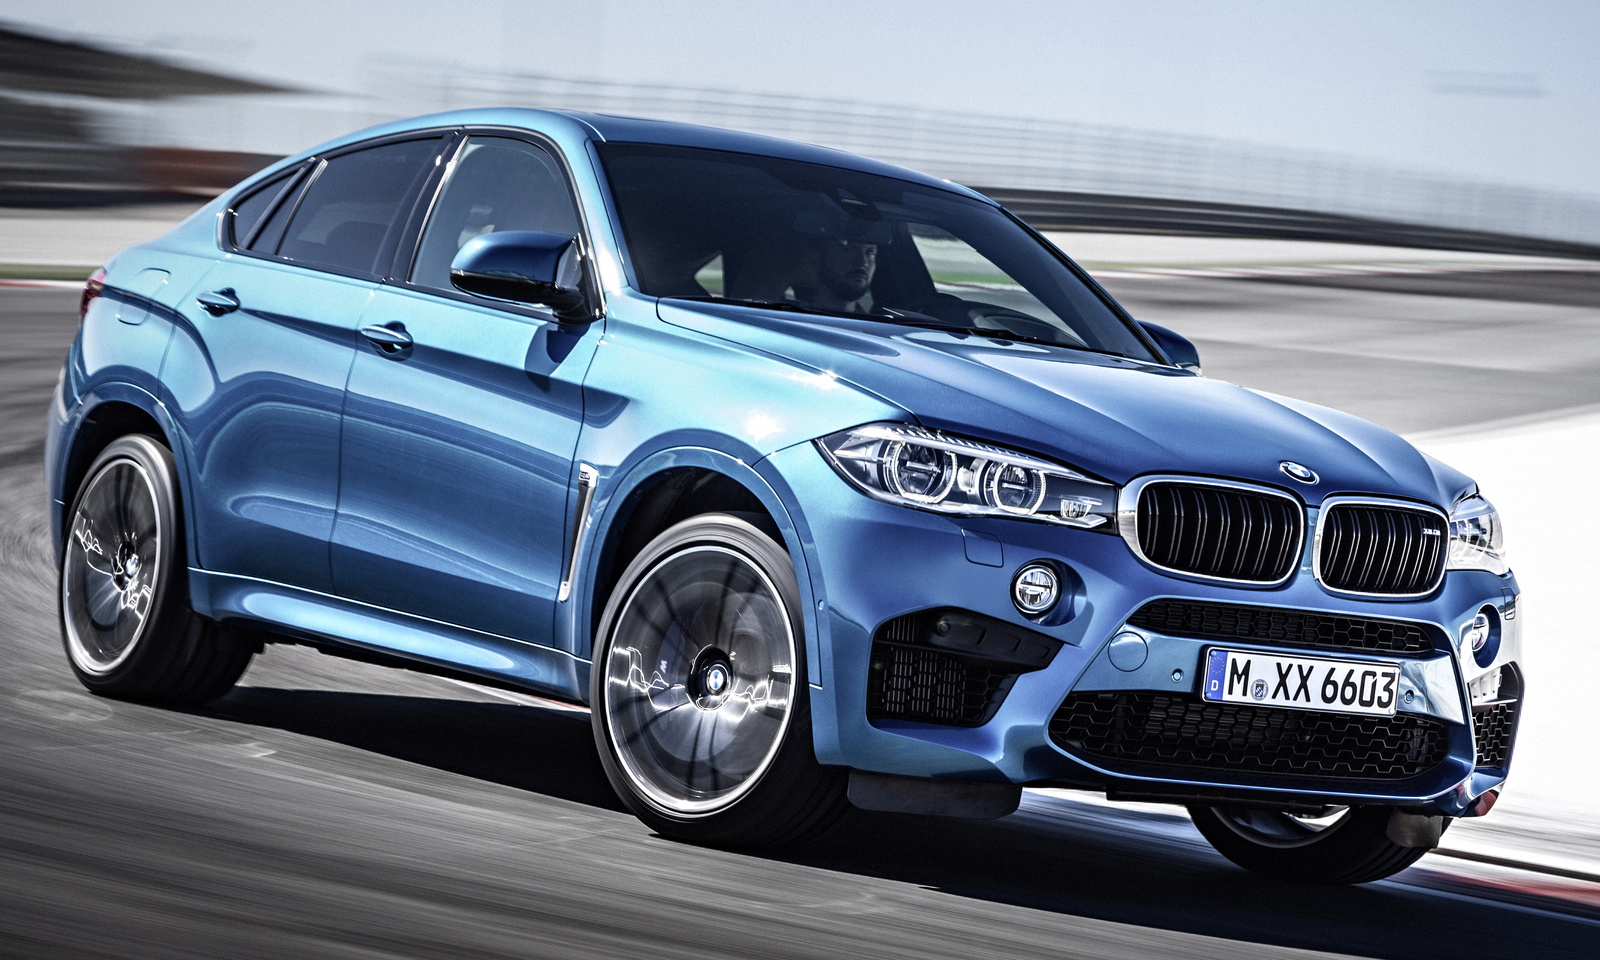 2015 Bmw X6 M Review Cargurus